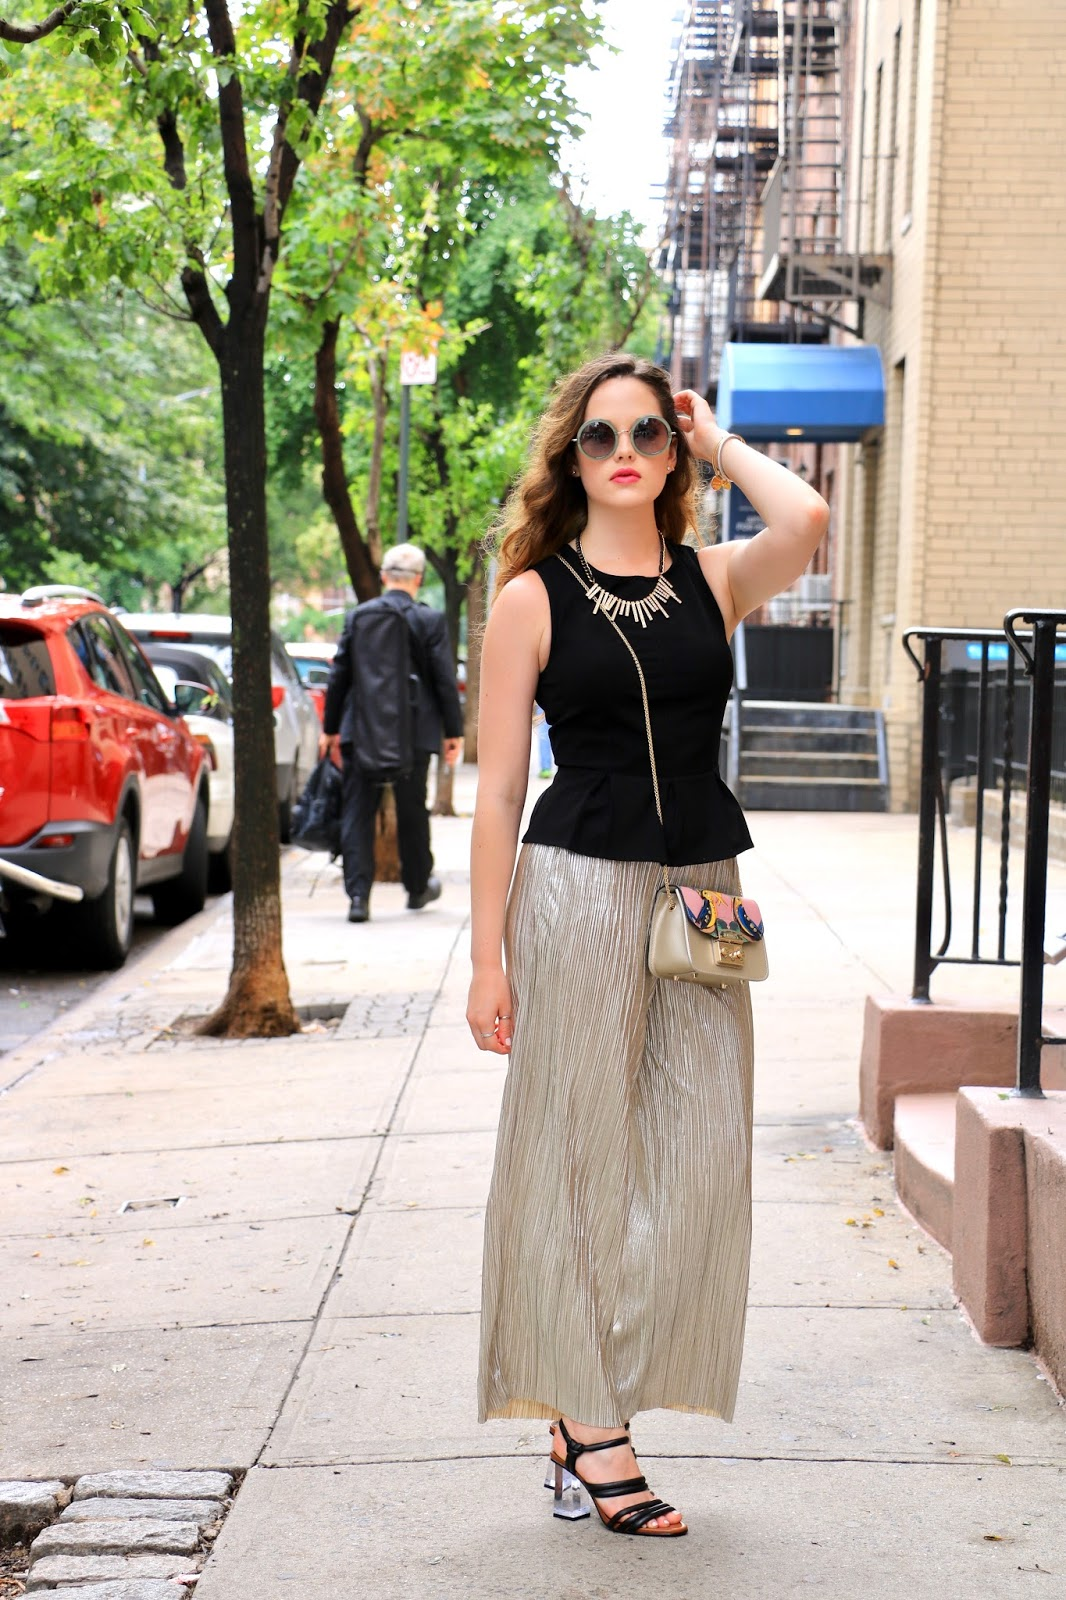 nyc fashion blogger Kathleen Harper's summer street style